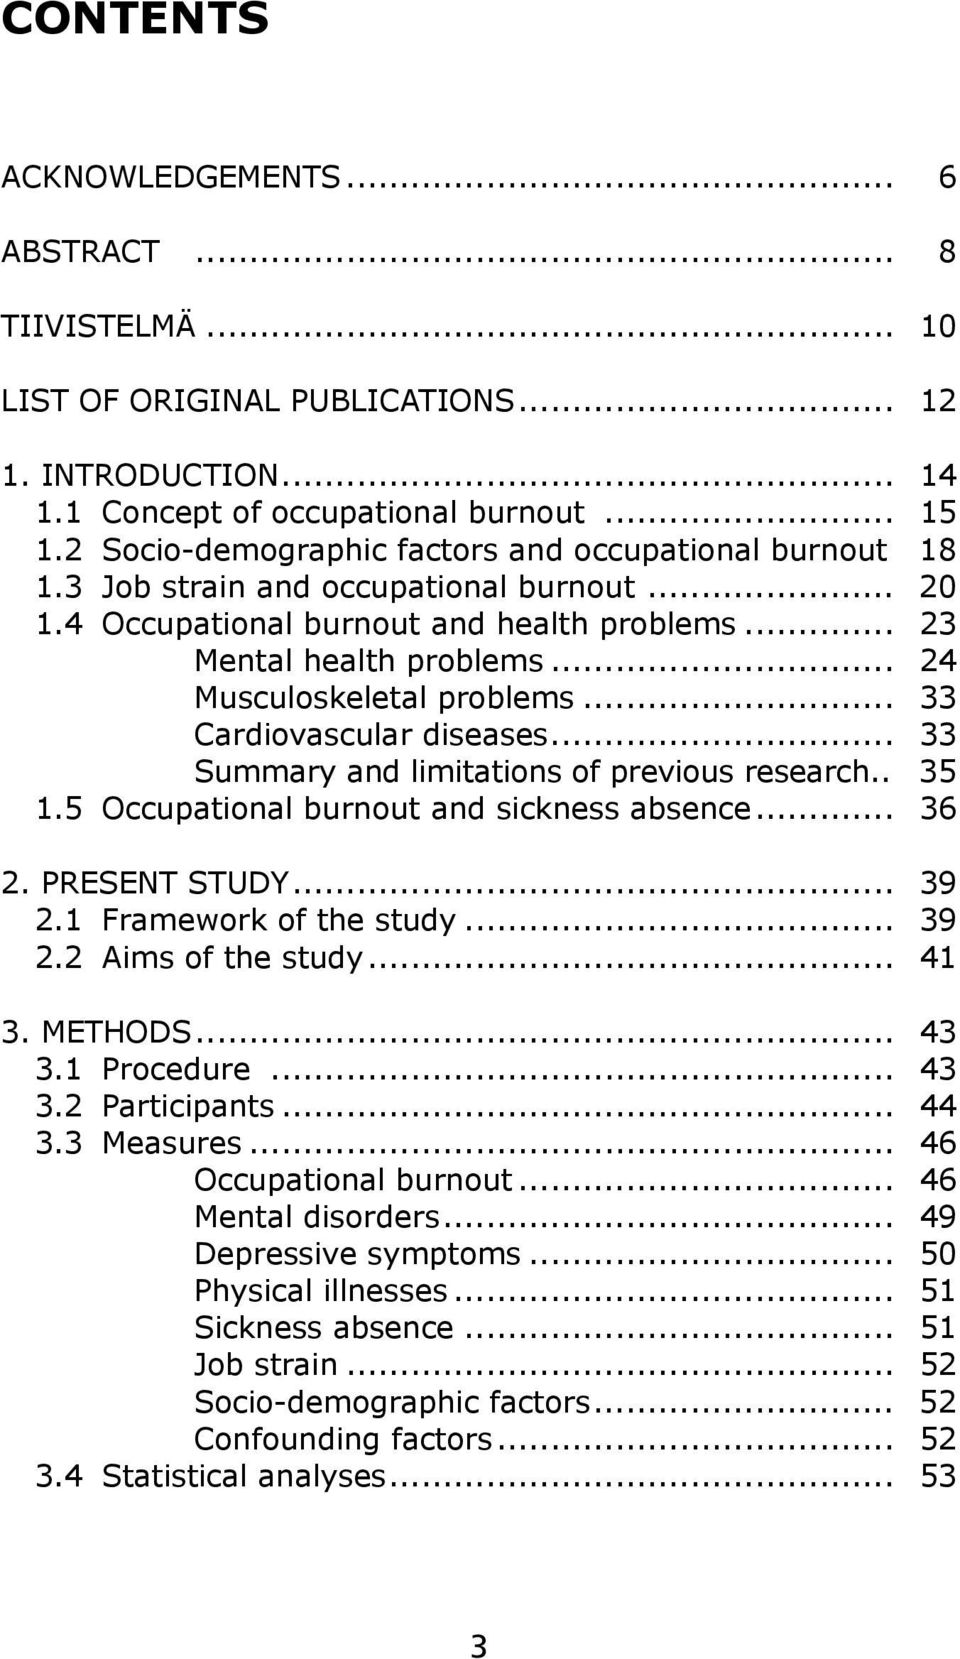 .. 24 Musculoskeletal problems... 33 Cardiovascular diseases... 33 Summary and limitations of previous research.. 35 1.5 Occupational burnout and sickness absence... 36 2. PRESENT STUDY... 39 2.